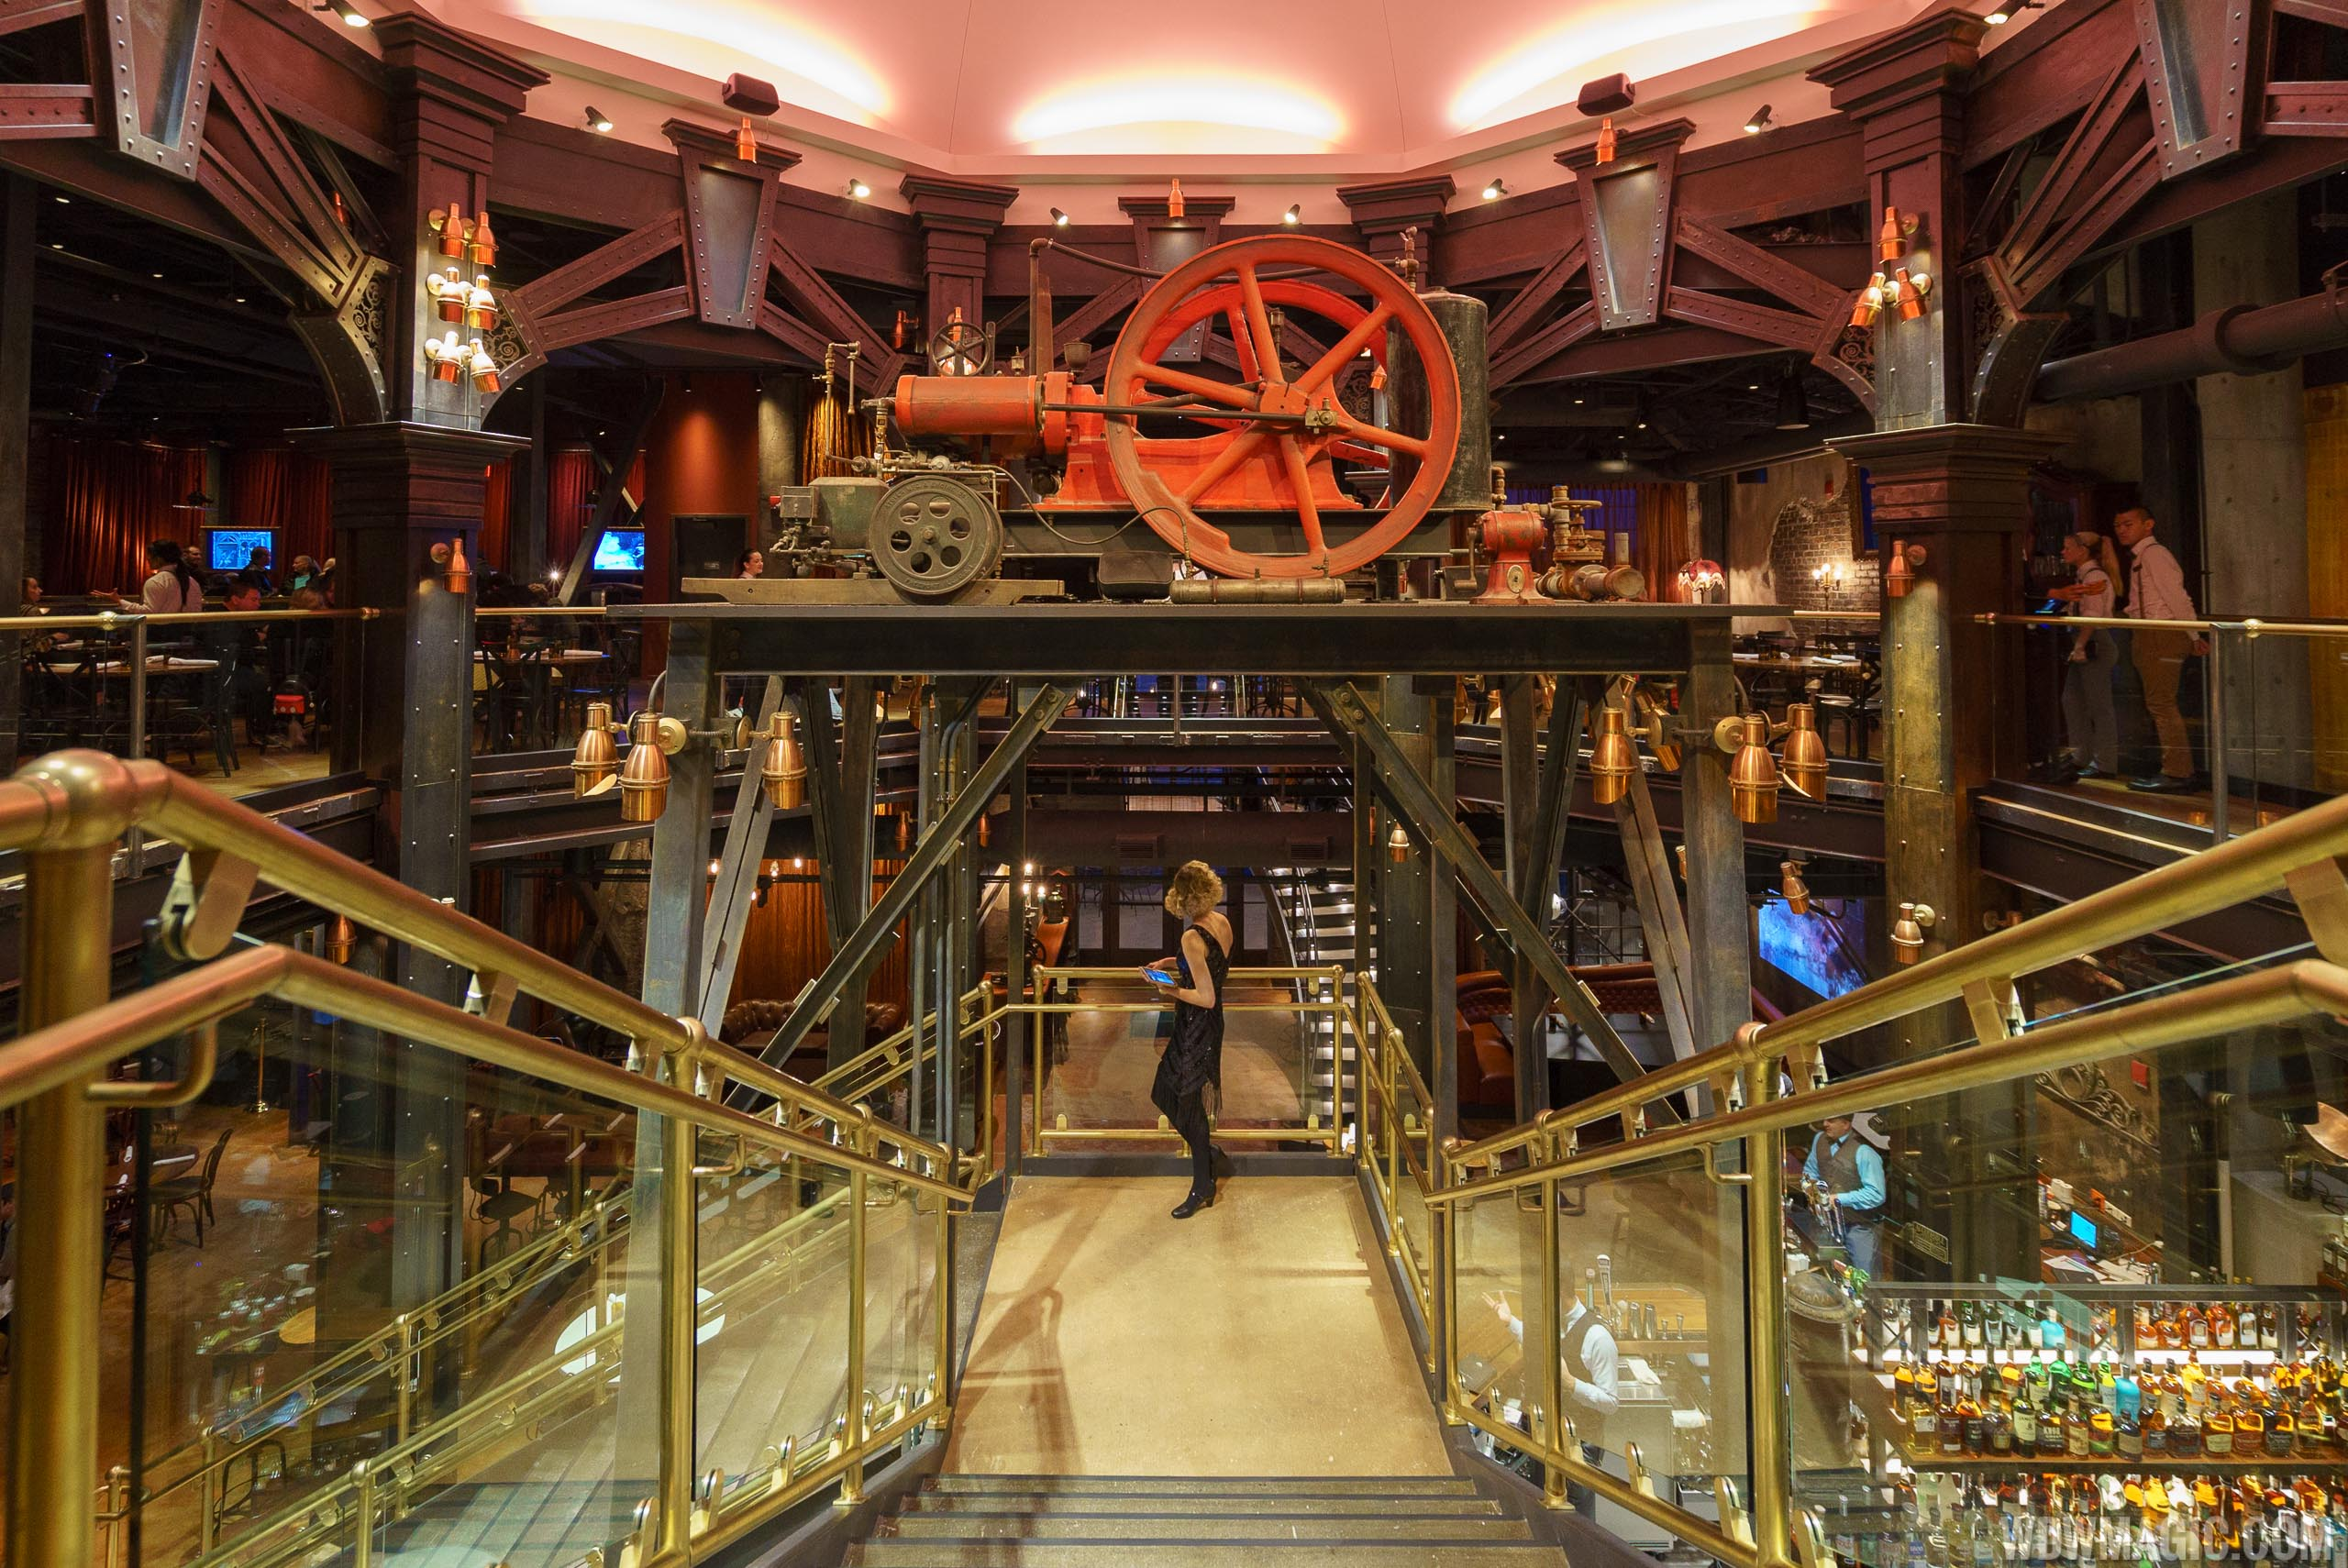 The central staircase at The Edison